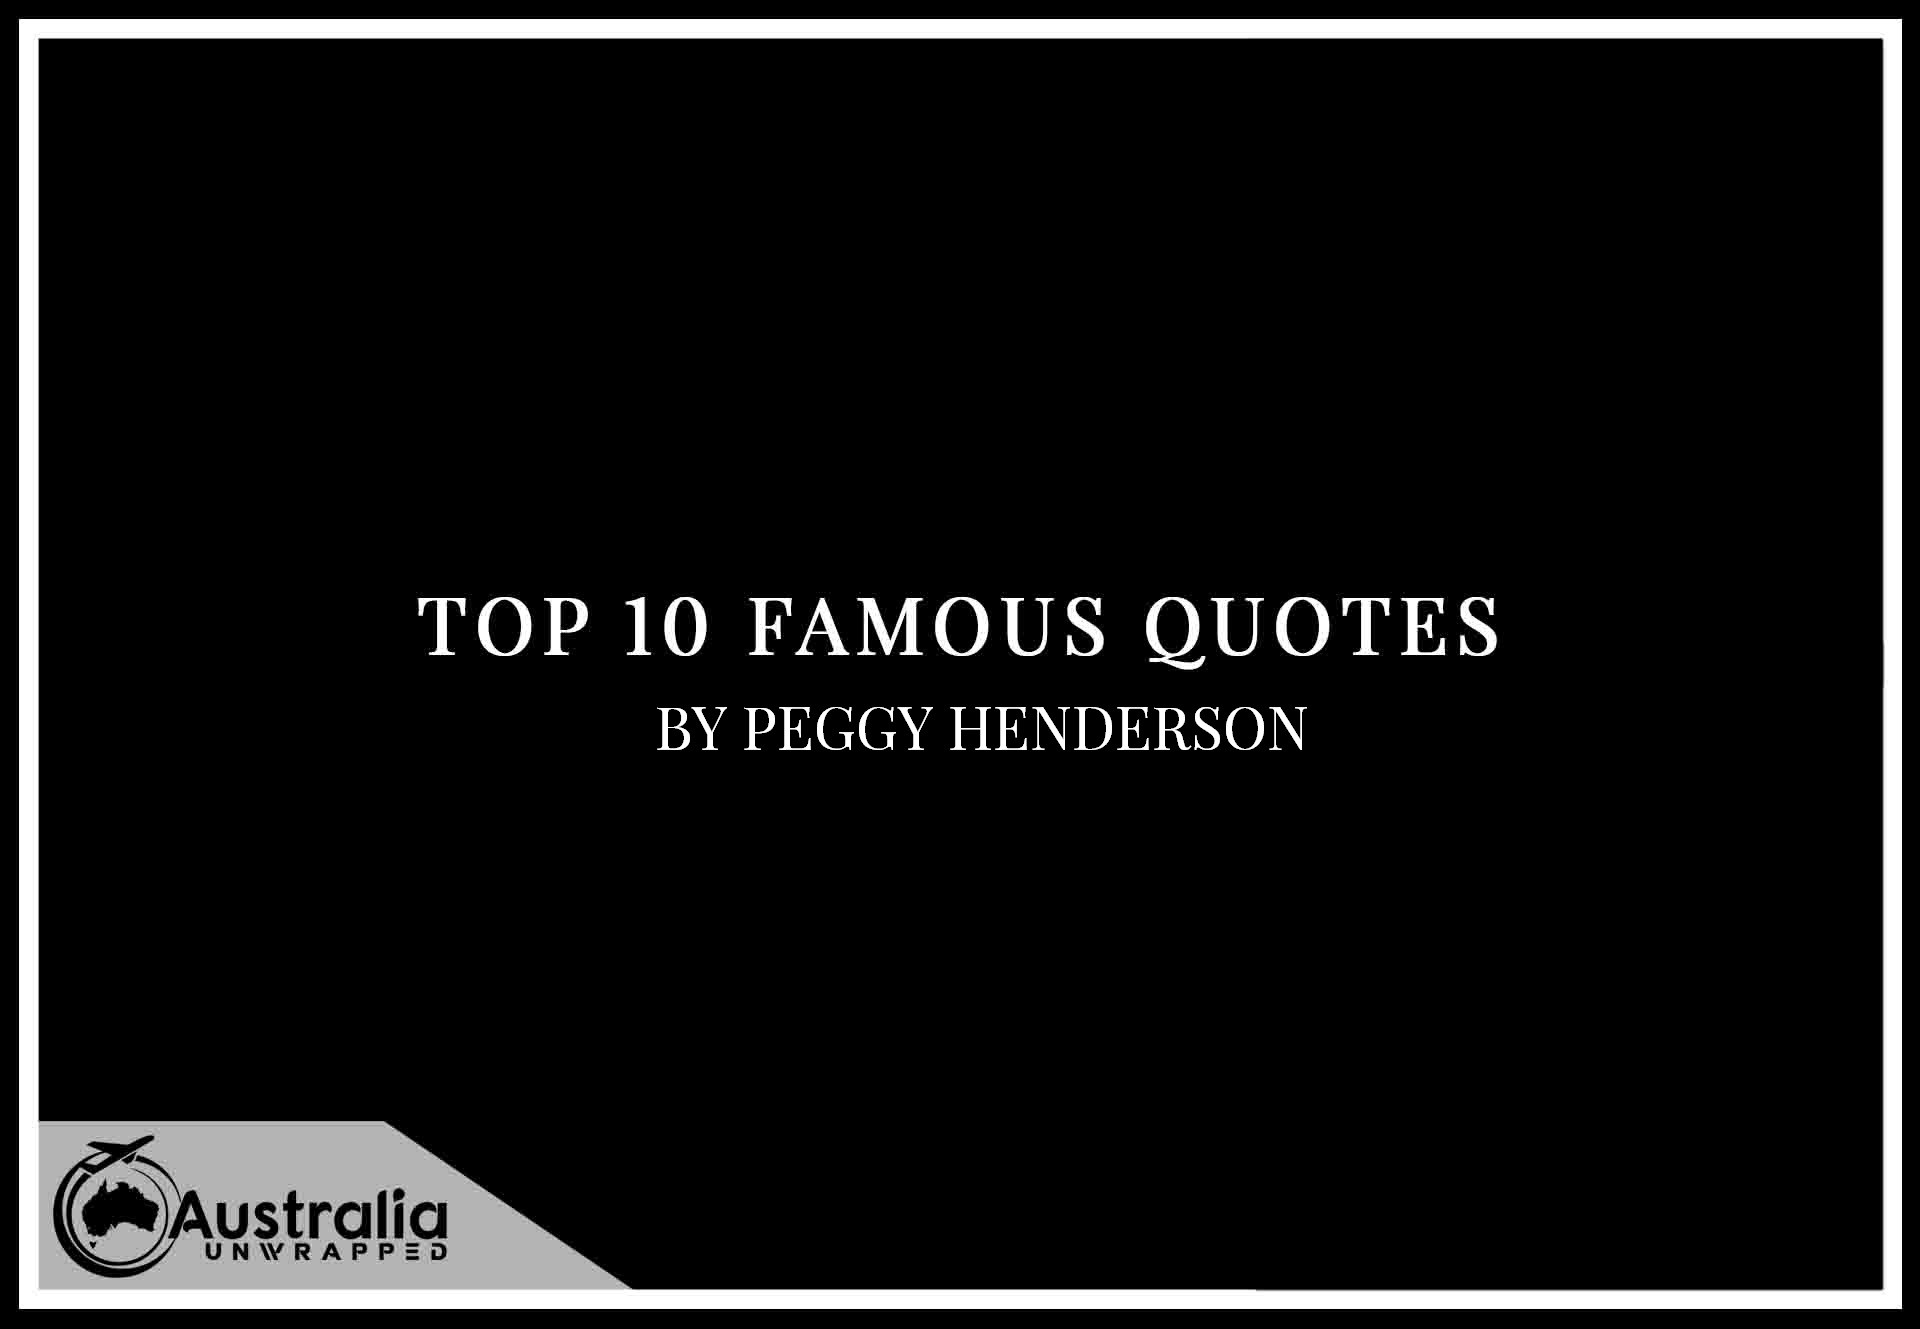 Top 10 Famous Quotes by Author Peggy L. Henderson